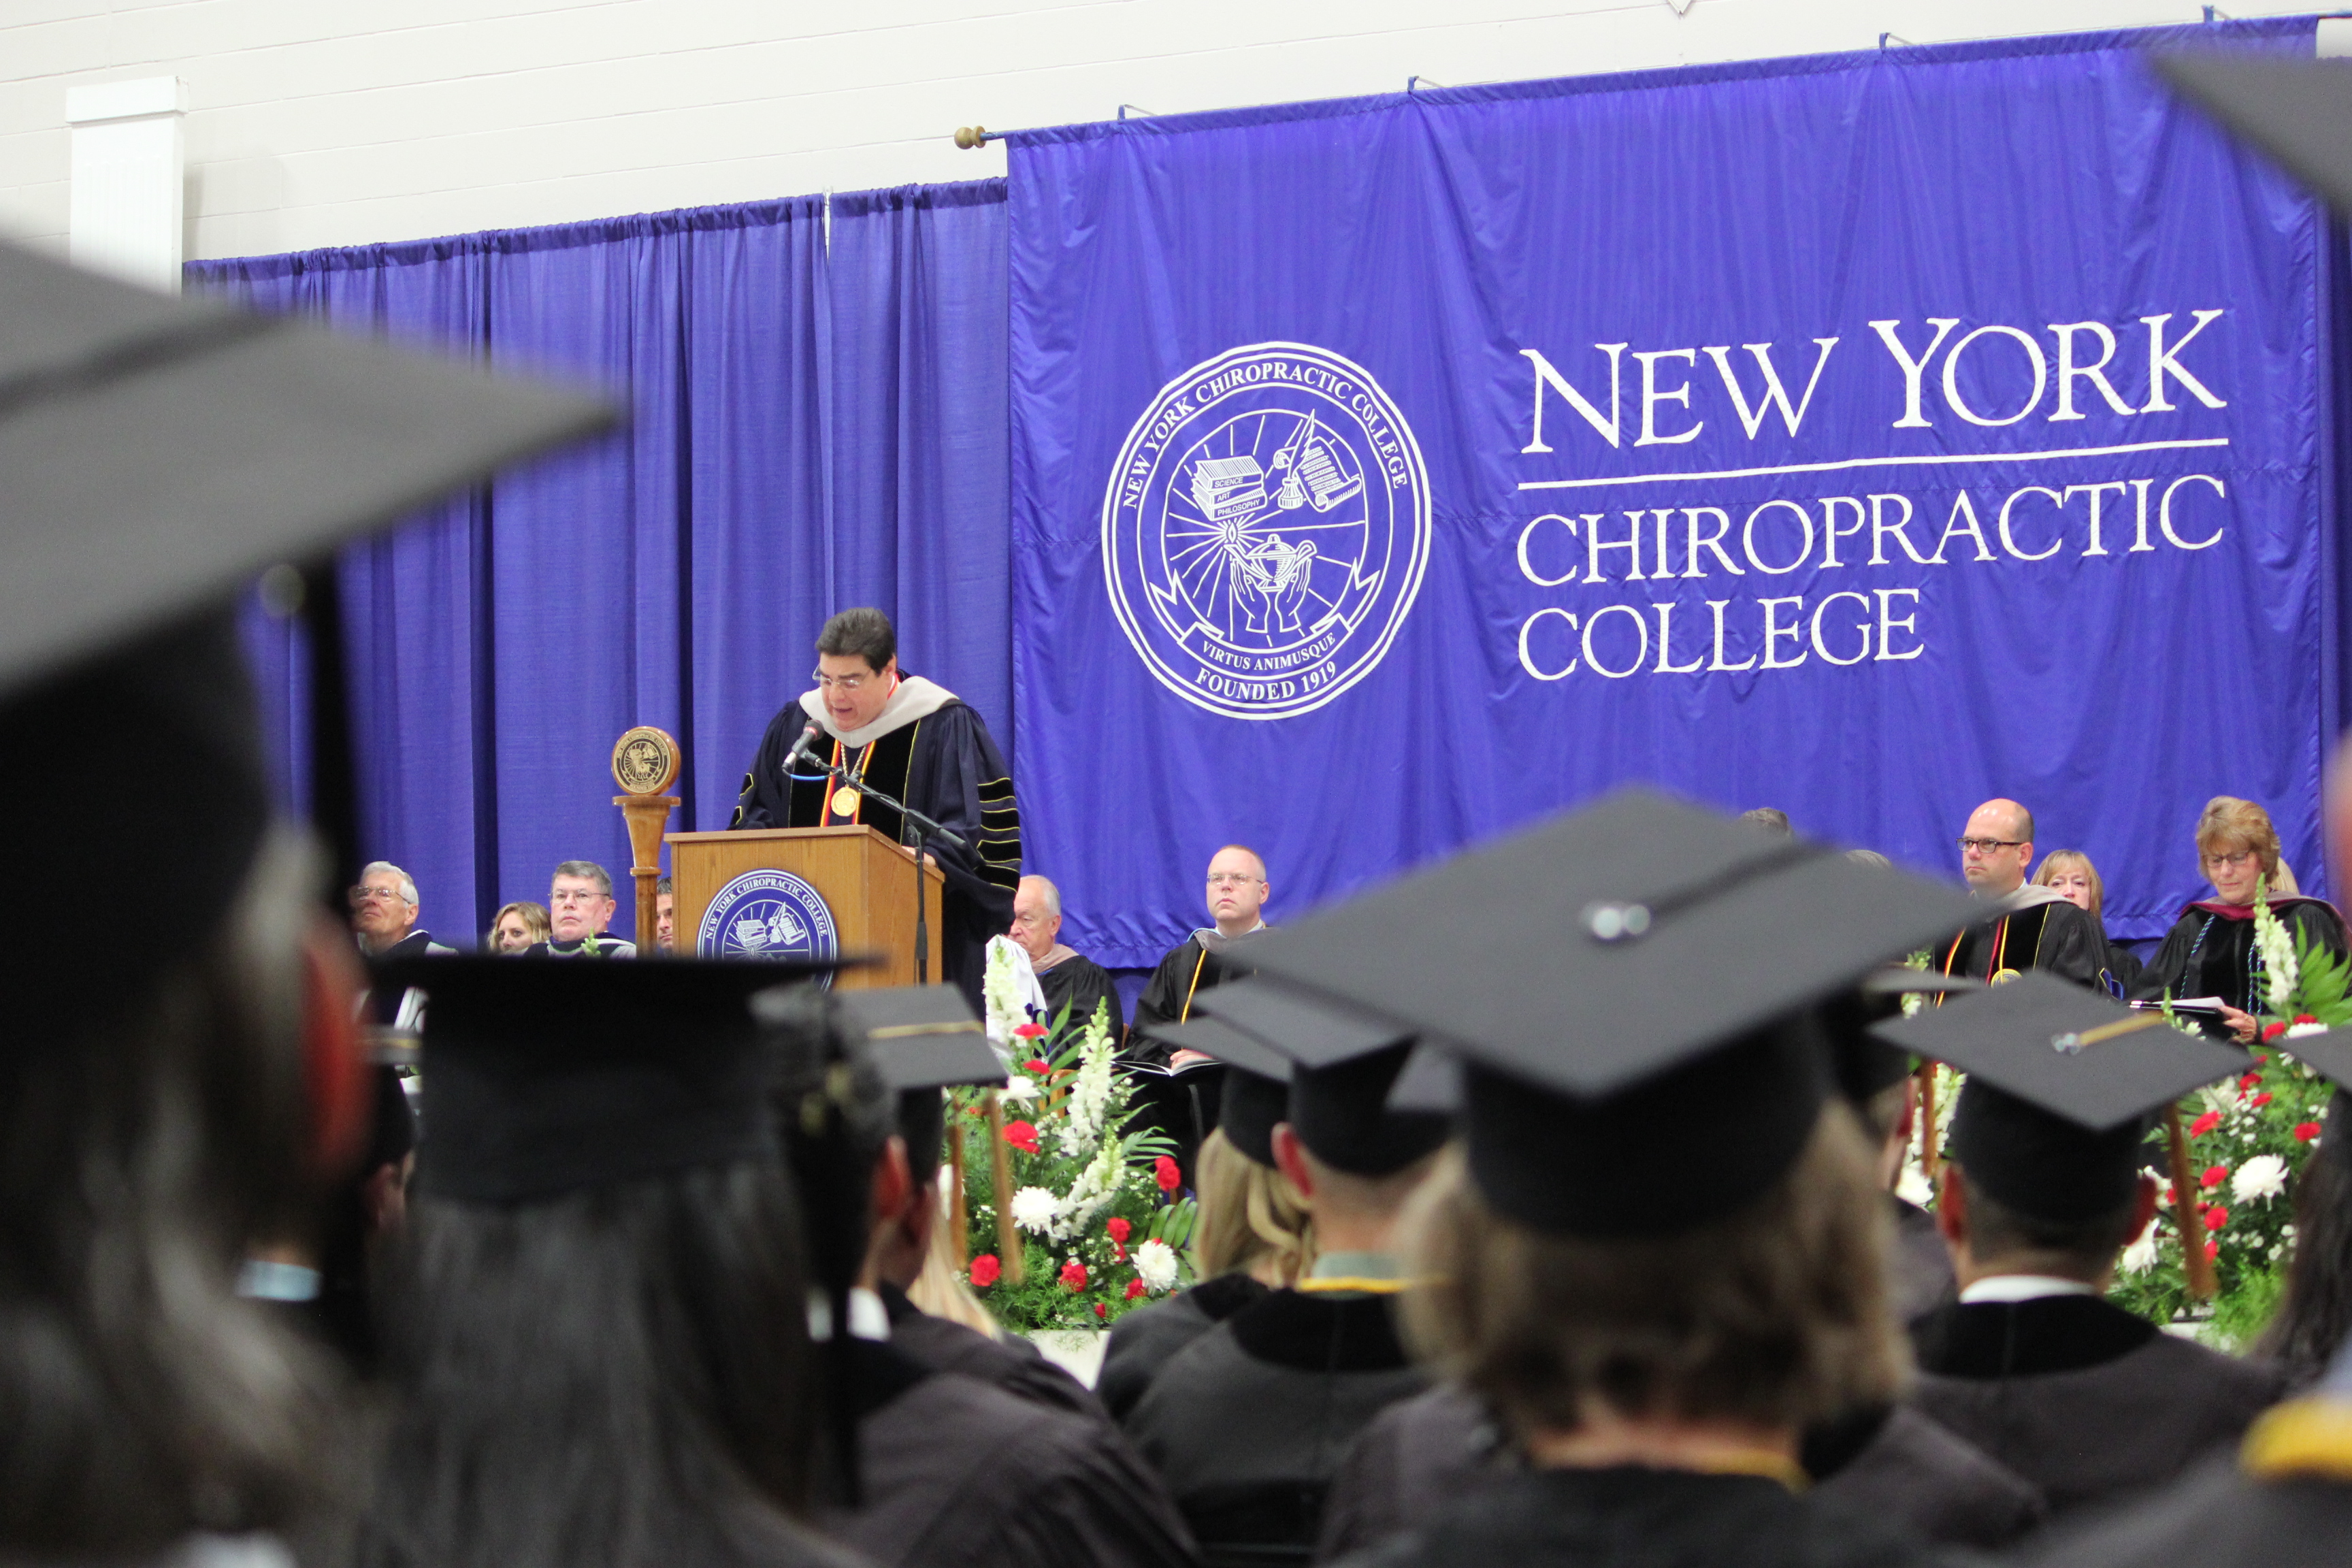 NYCC President, Dr. Frank. J. Nicchi speaking at the July Commencement exercises held at New York Chiropractic College.